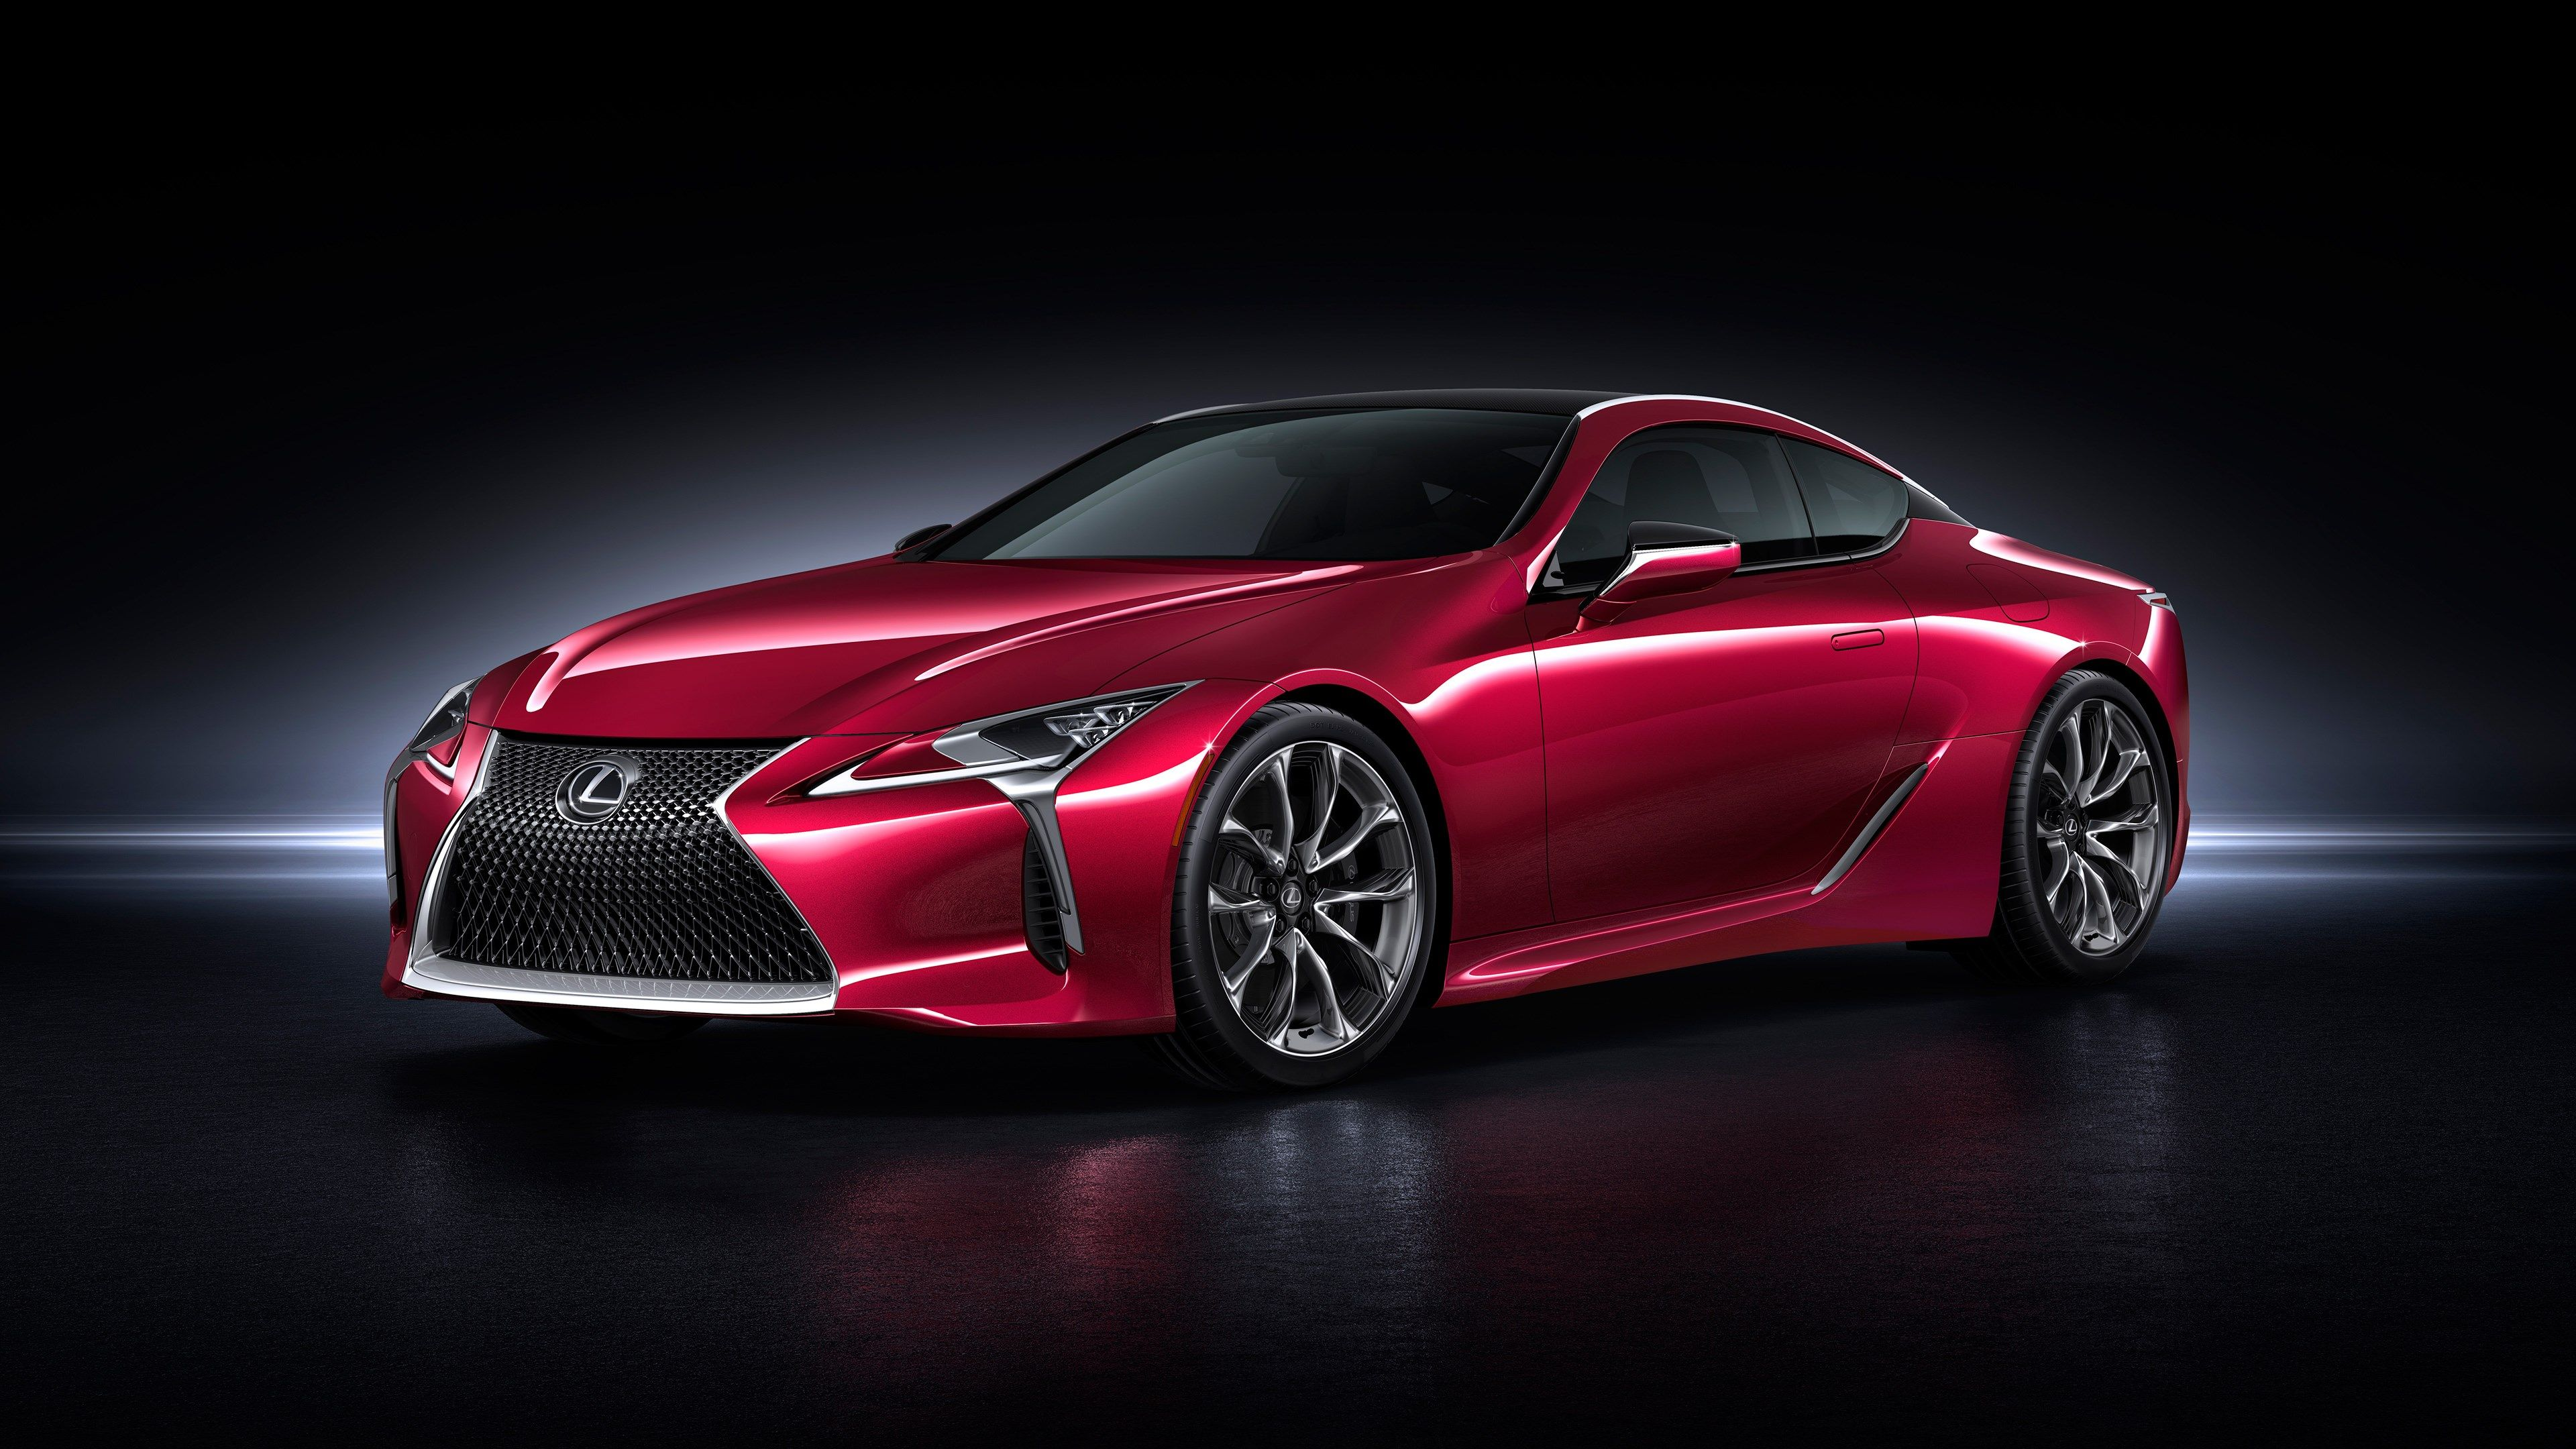 Lexus lc 500 images and pictures 3840x2160 1049 kb